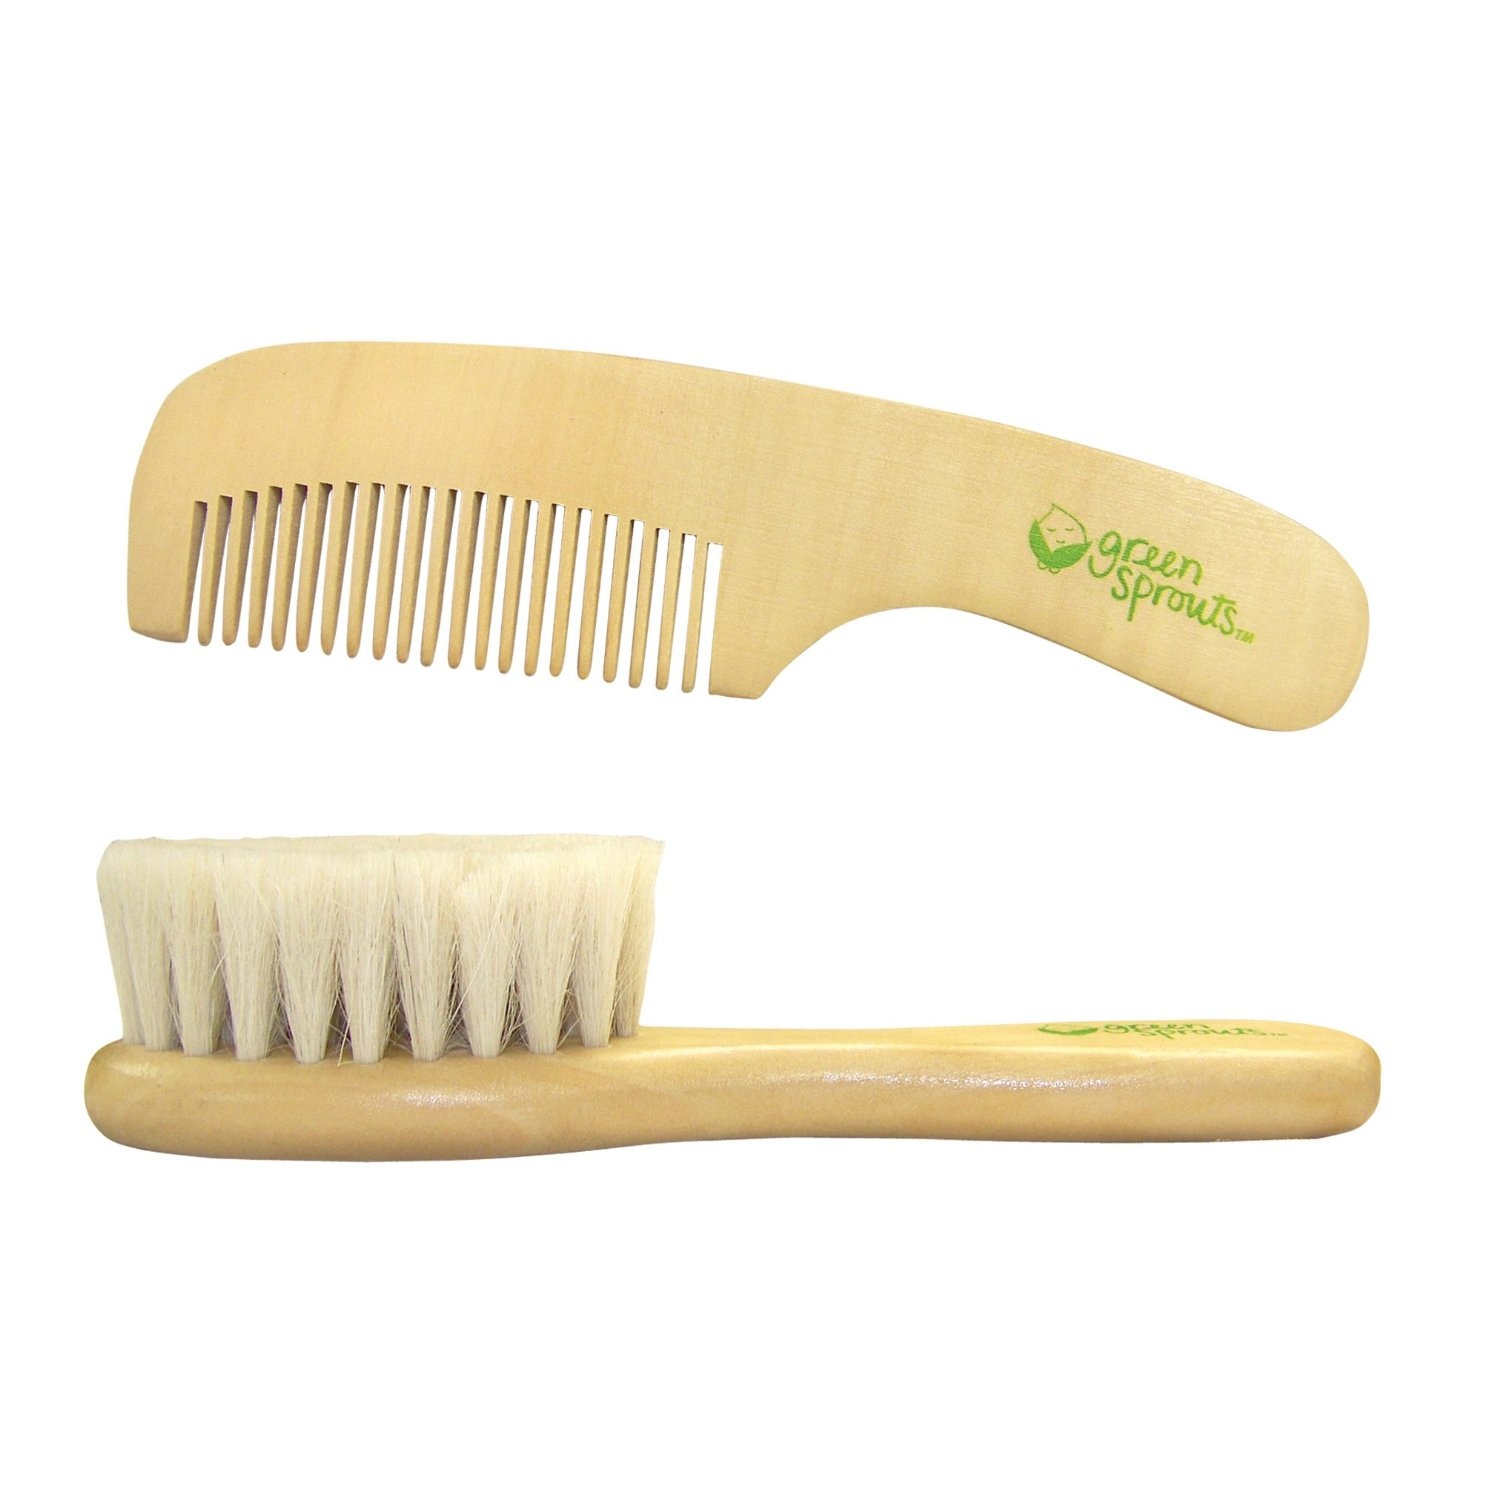 Wooden Brush and Comb Set    $8.95    Wants 1  PURCHASED